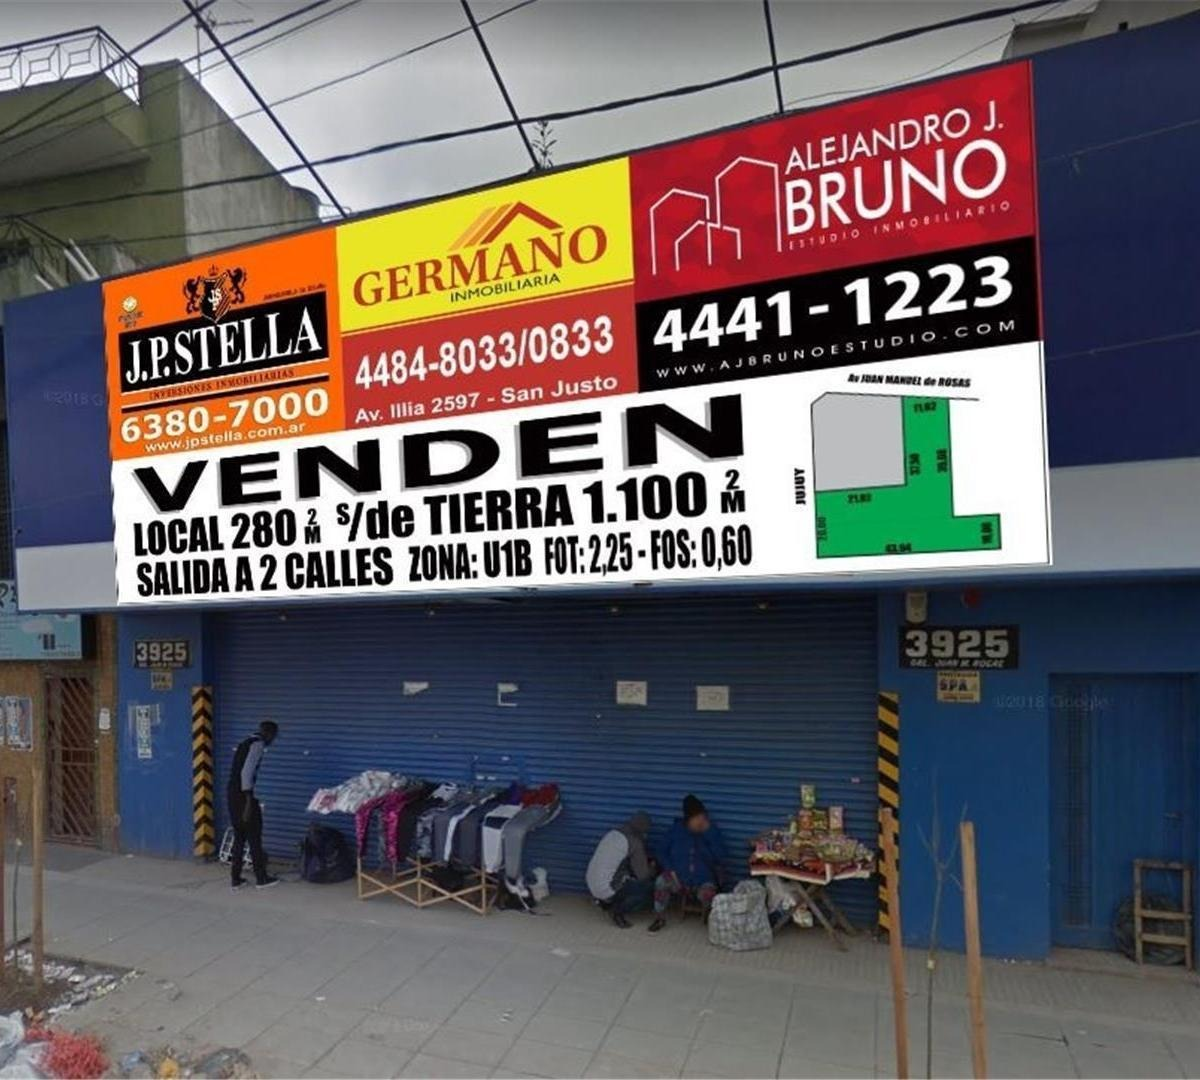 local comercial - 280 m2 + 2 lotes 1100 m2 totales - zona sh